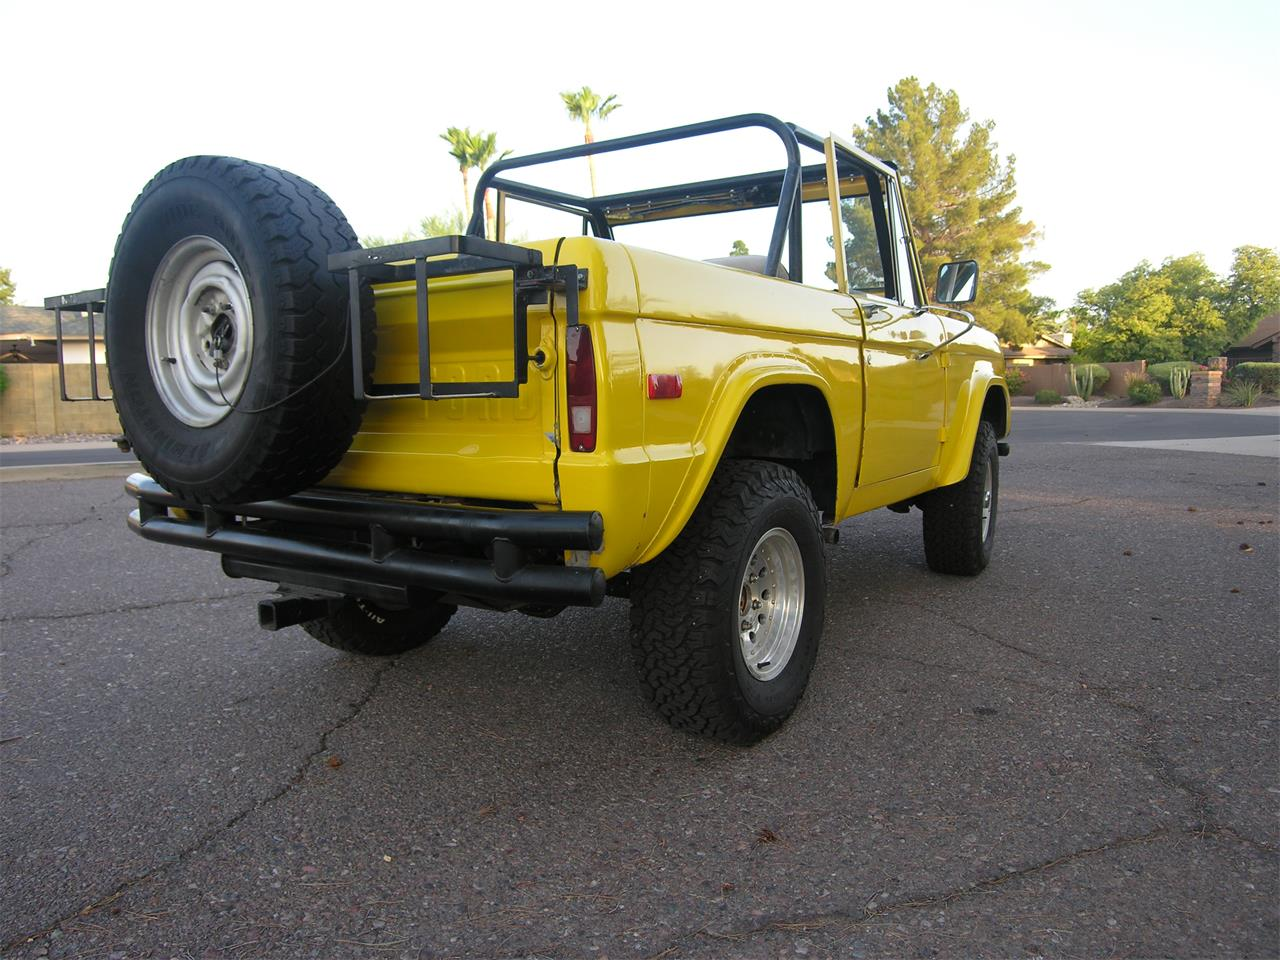 1971 Ford Bronco for sale in Scottsdale, AZ – photo 11